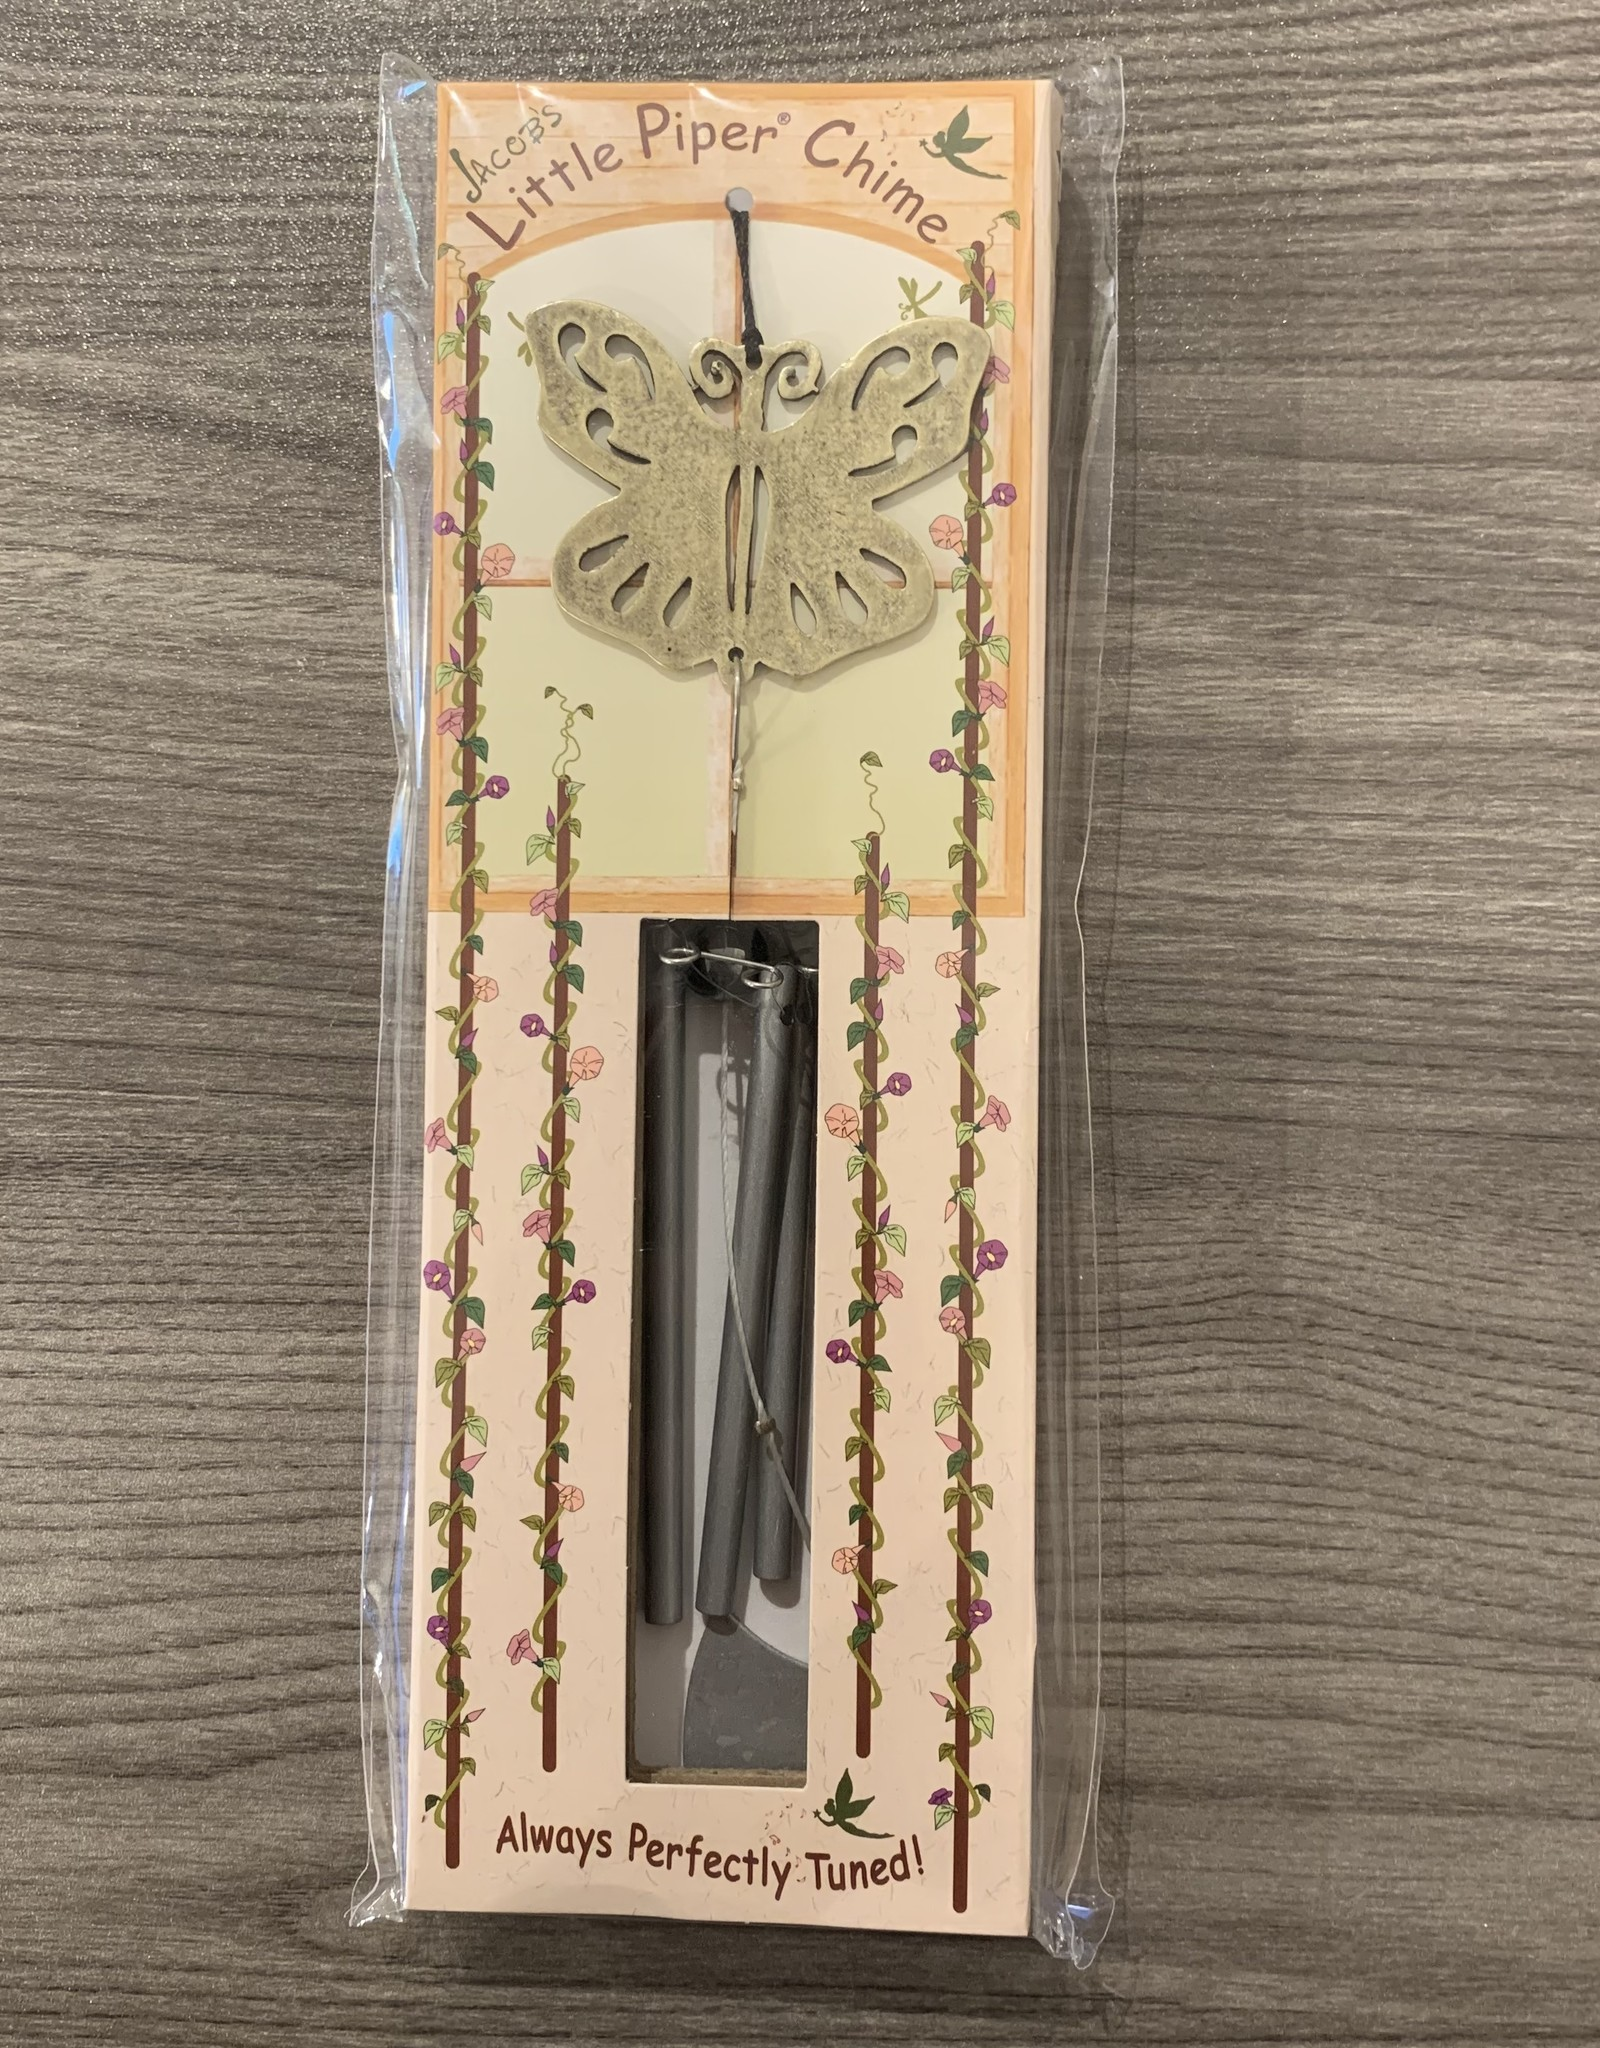 Jacob's Musical Chimes *Piper Butterfly Chime